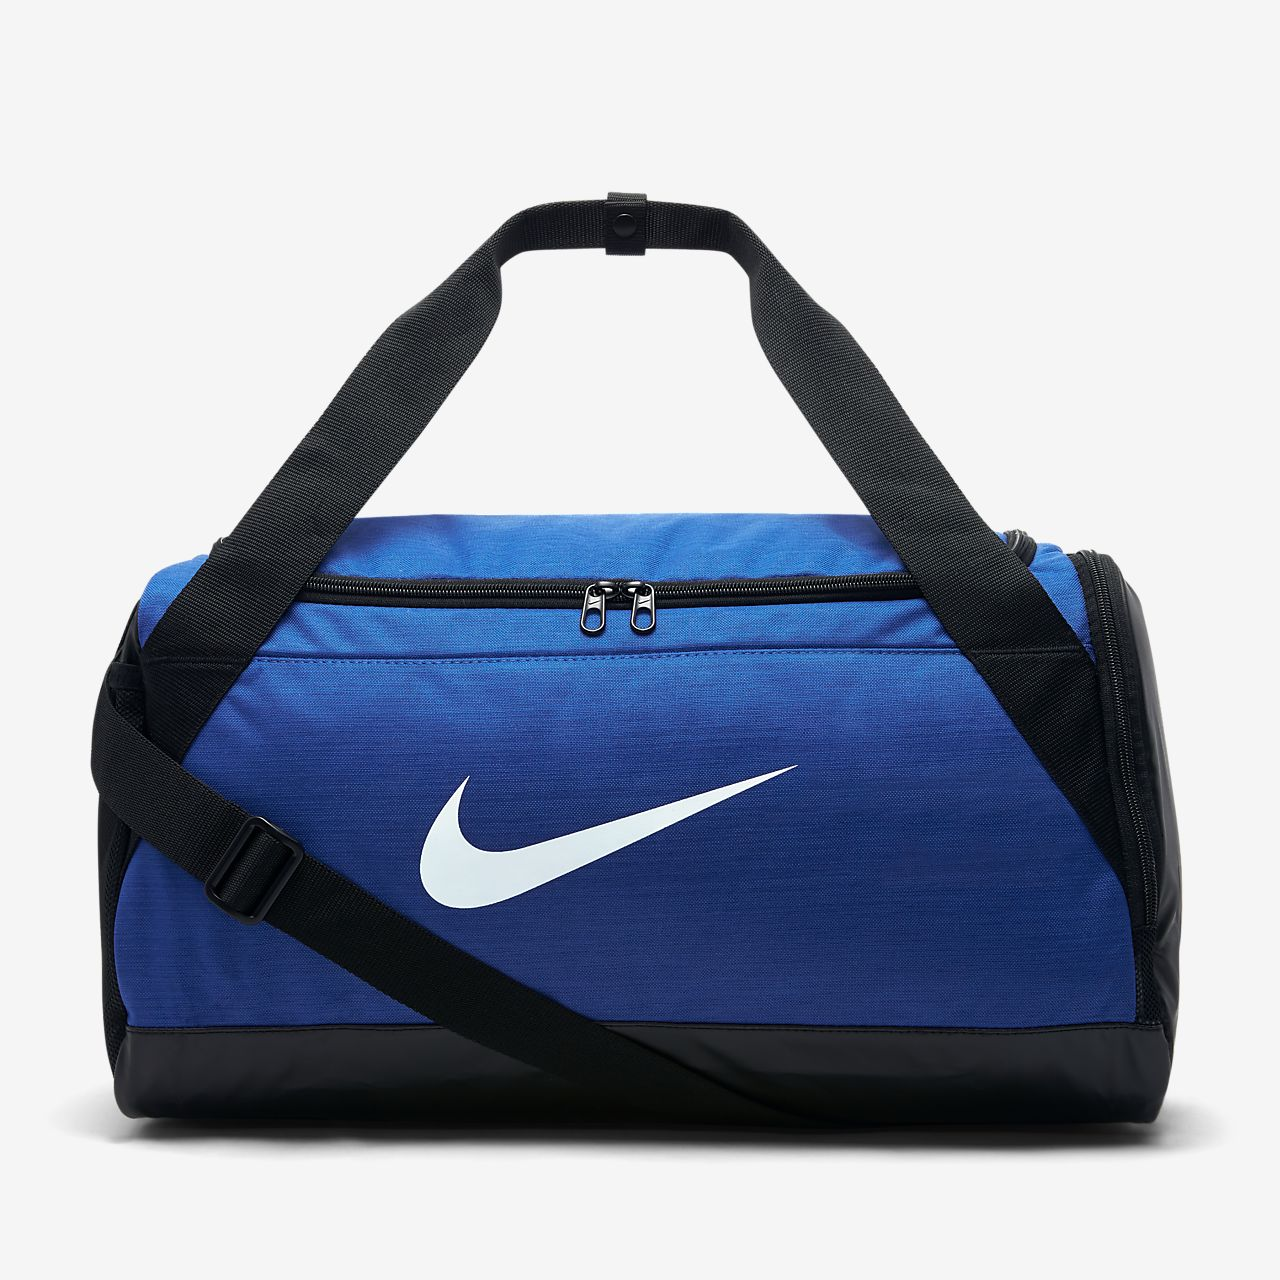 611873e20 Nike Brasilia (Small) Training Duffel Bag. Nike.com GB